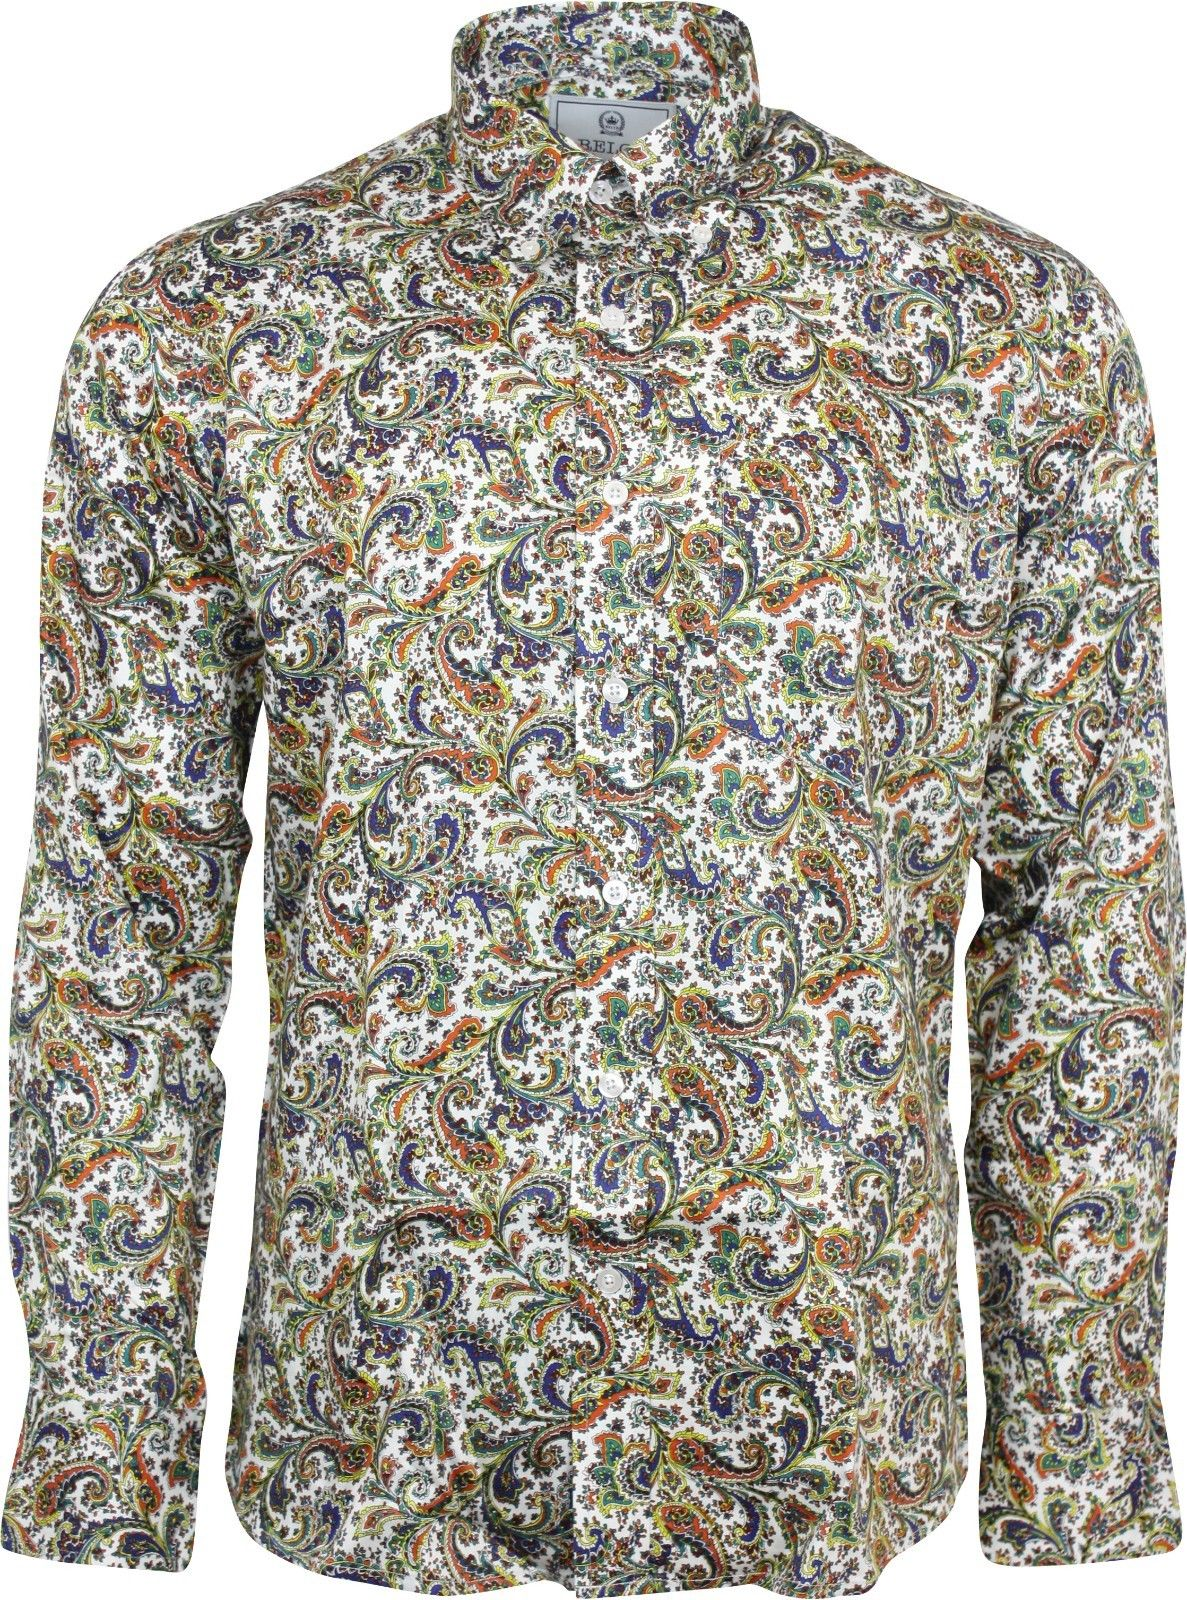 White Paisley Shirt Was £42.50 Now £30